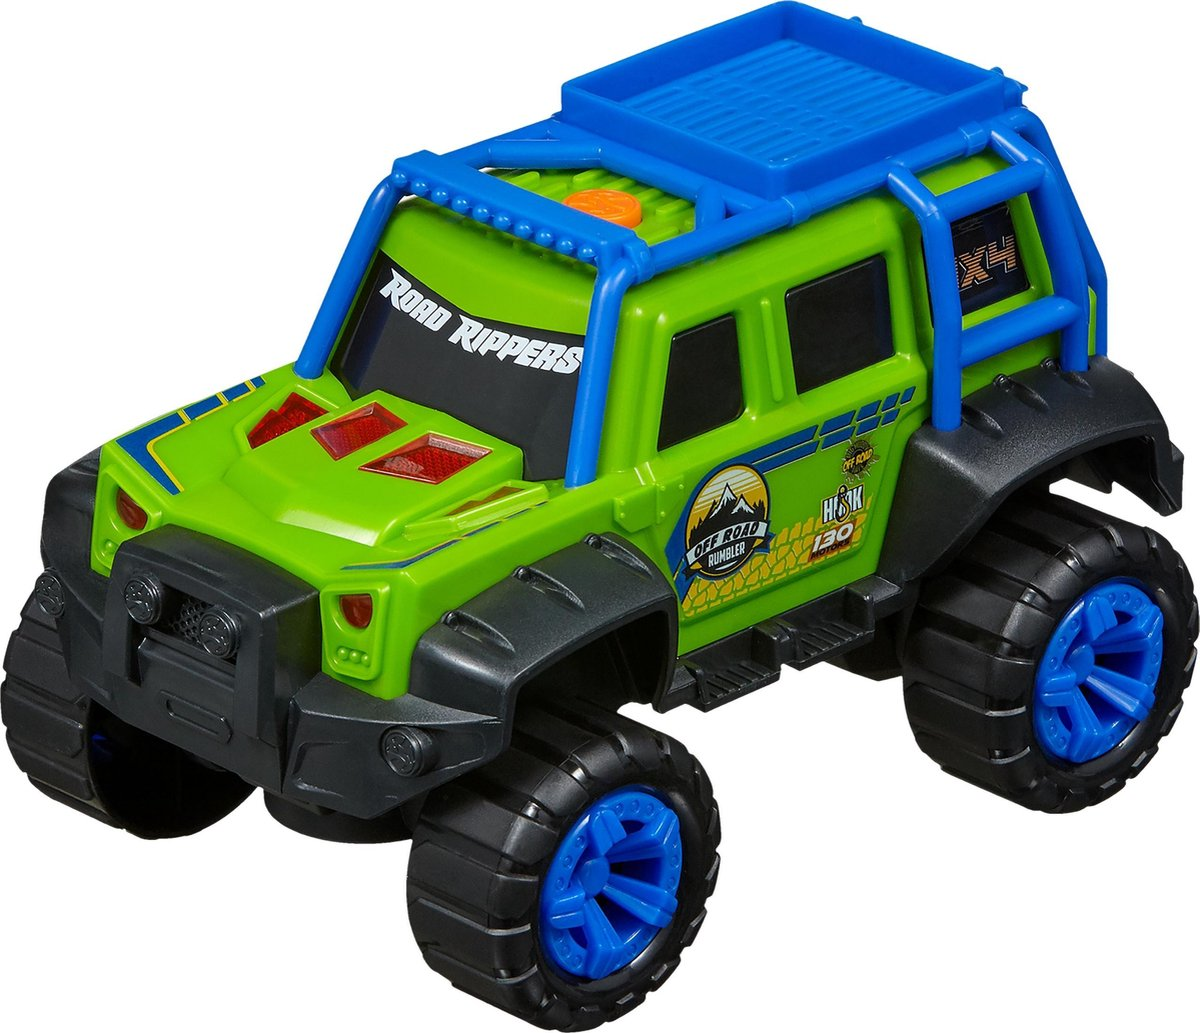 Nikko - Road Rippers Auto Off Road Rumbler: Forest Green